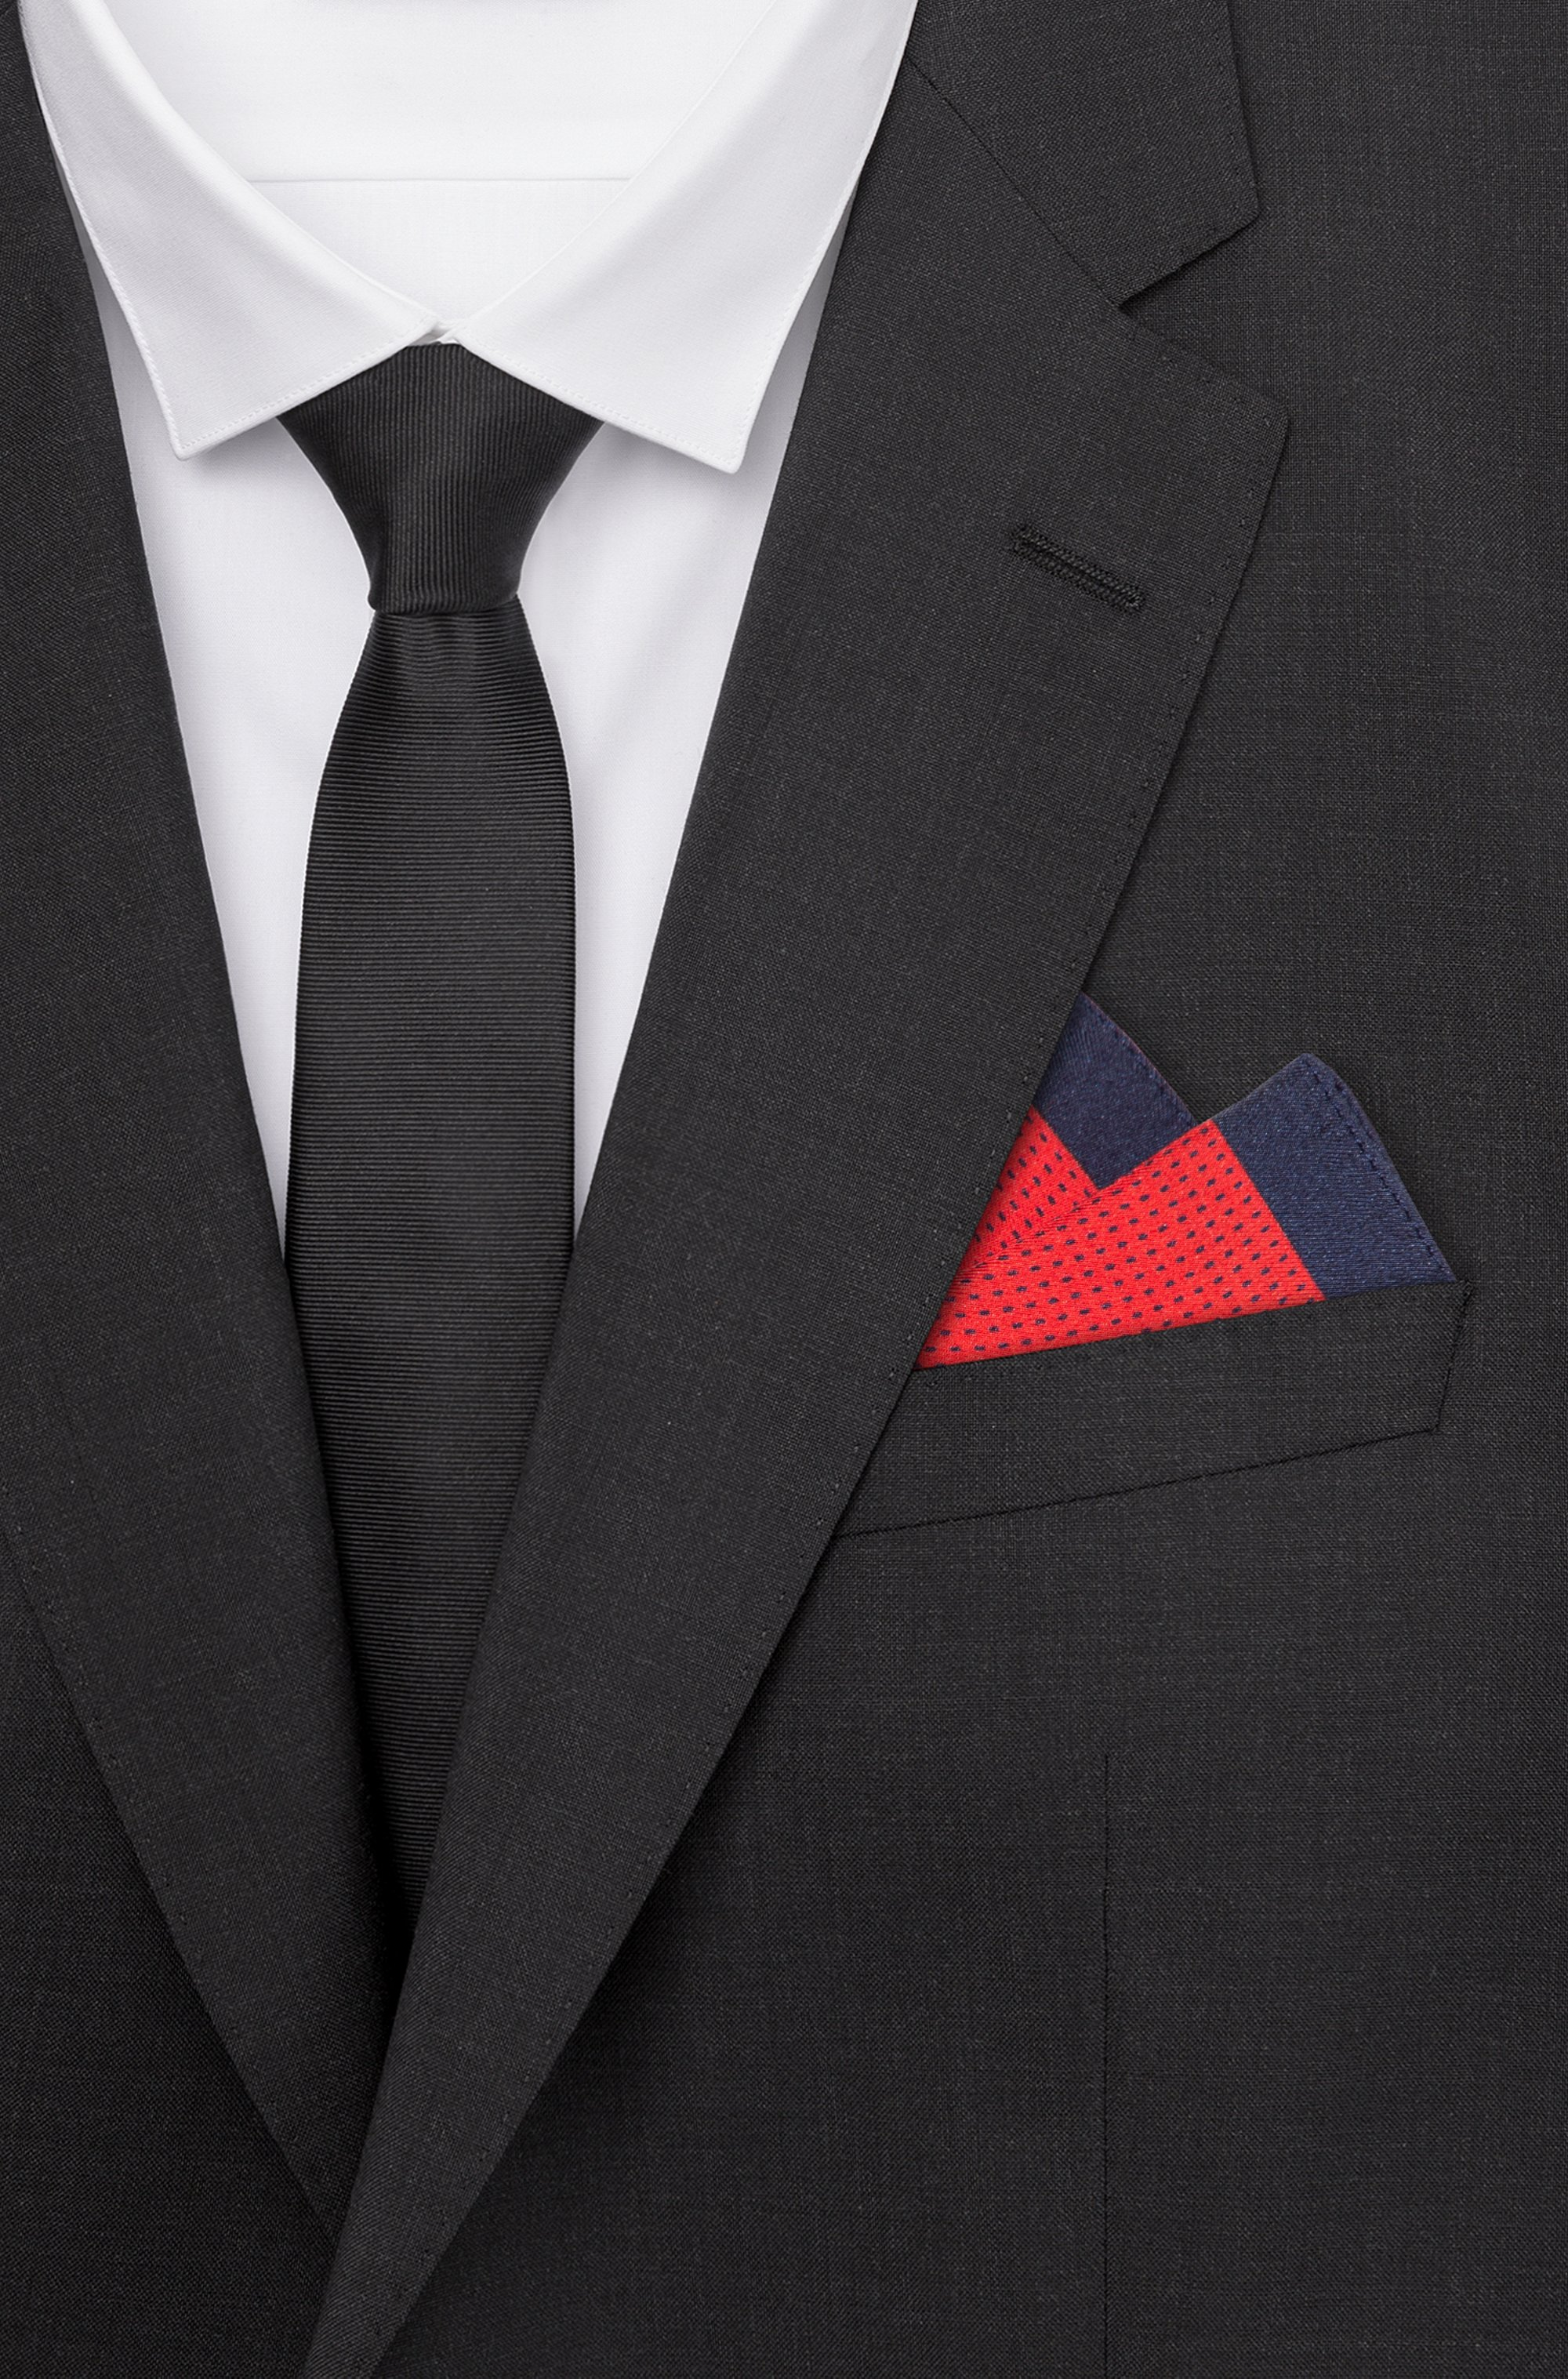 Twill pocket square with micro pattern and contrast border